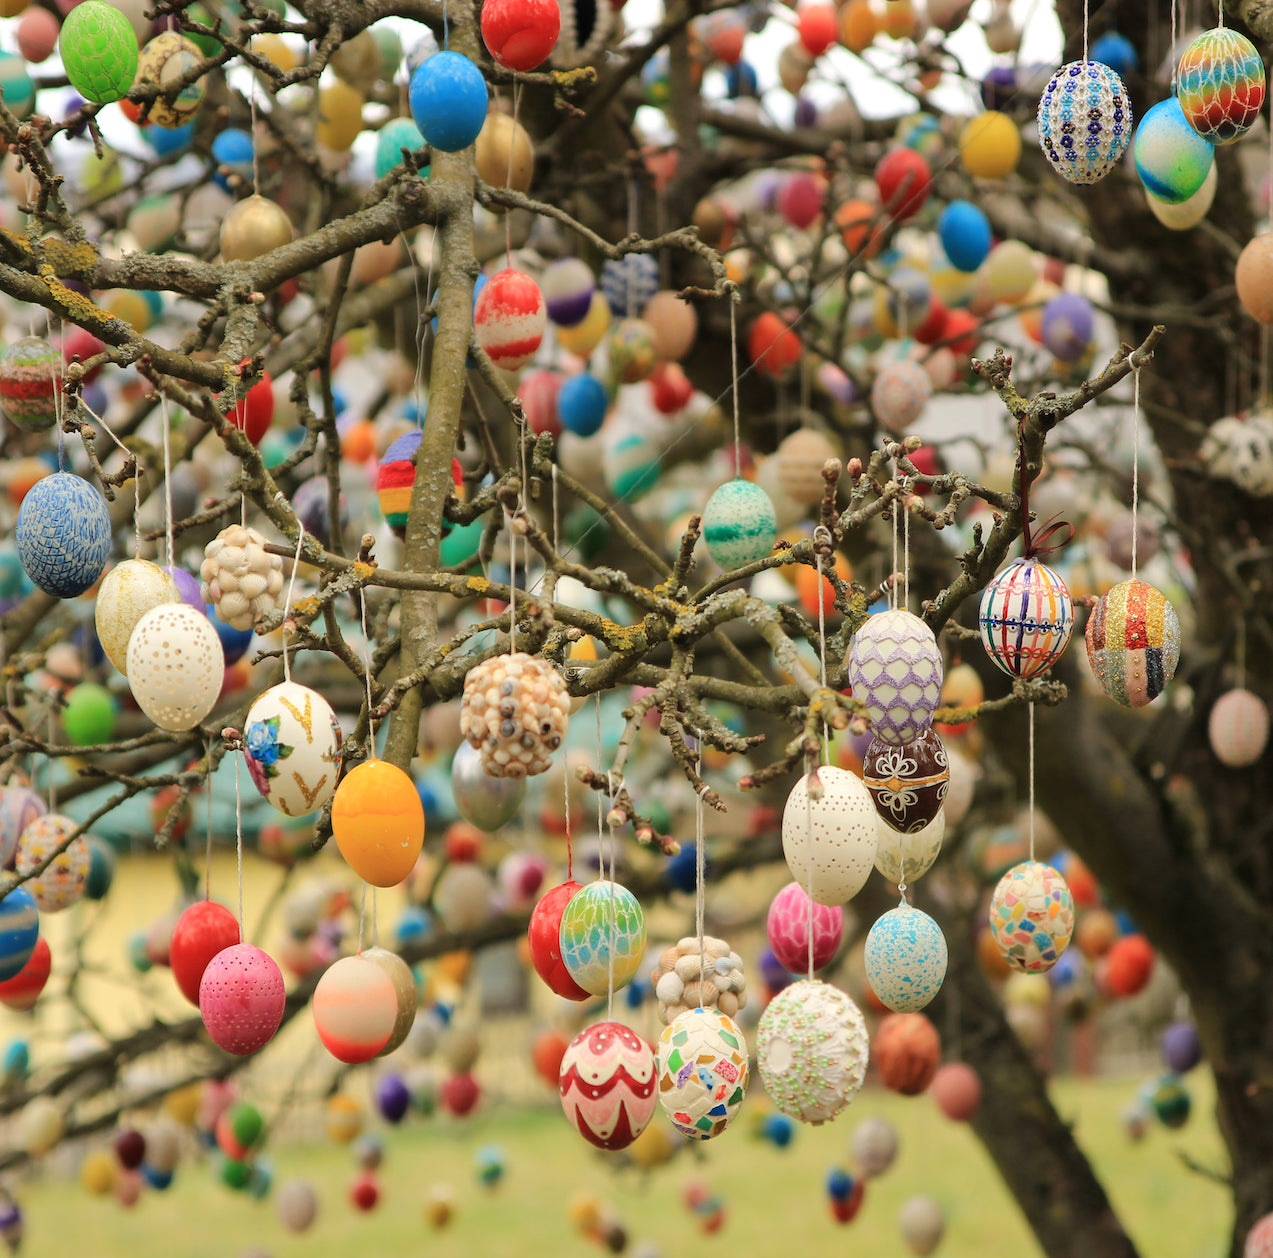 How many eggs does it take to make an Easter tree?